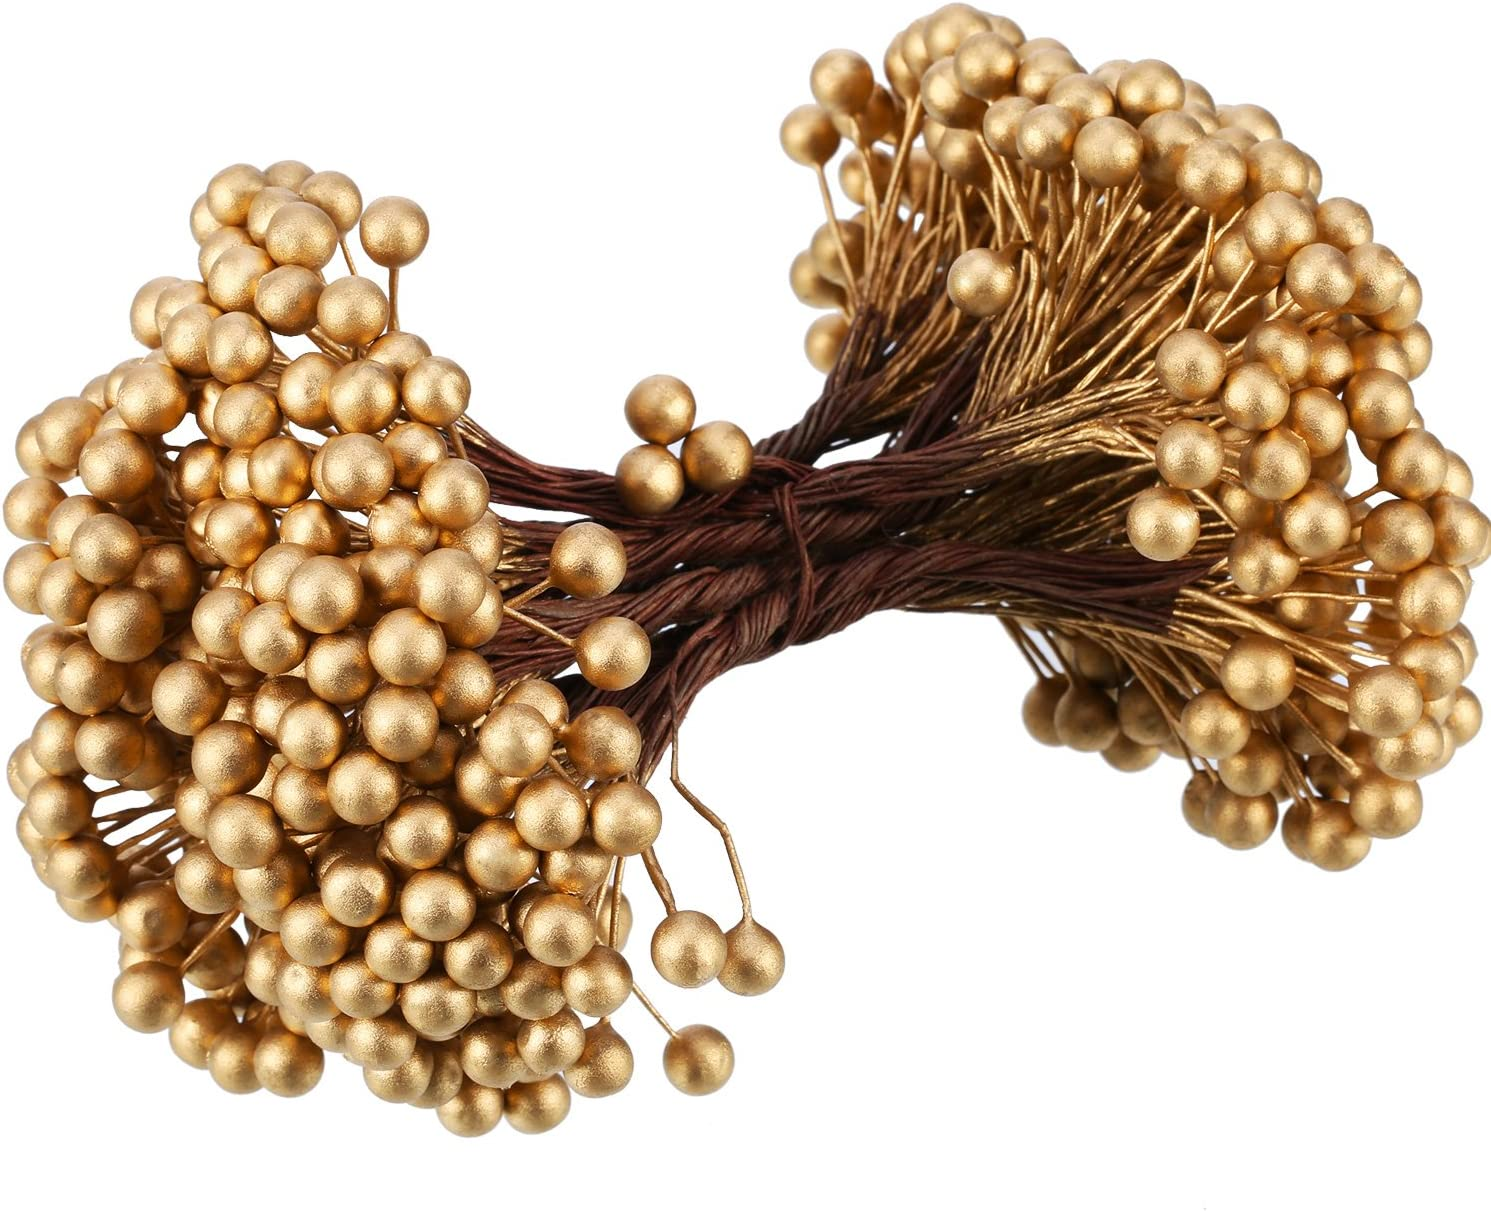 BBTO Artificial Holly Berries on Wire Stems, 250 Stems with 500 Pieces 8 mm Fake Berries for Tree Decorations Wreath Craft Use Wedding Party Favor (Gold)